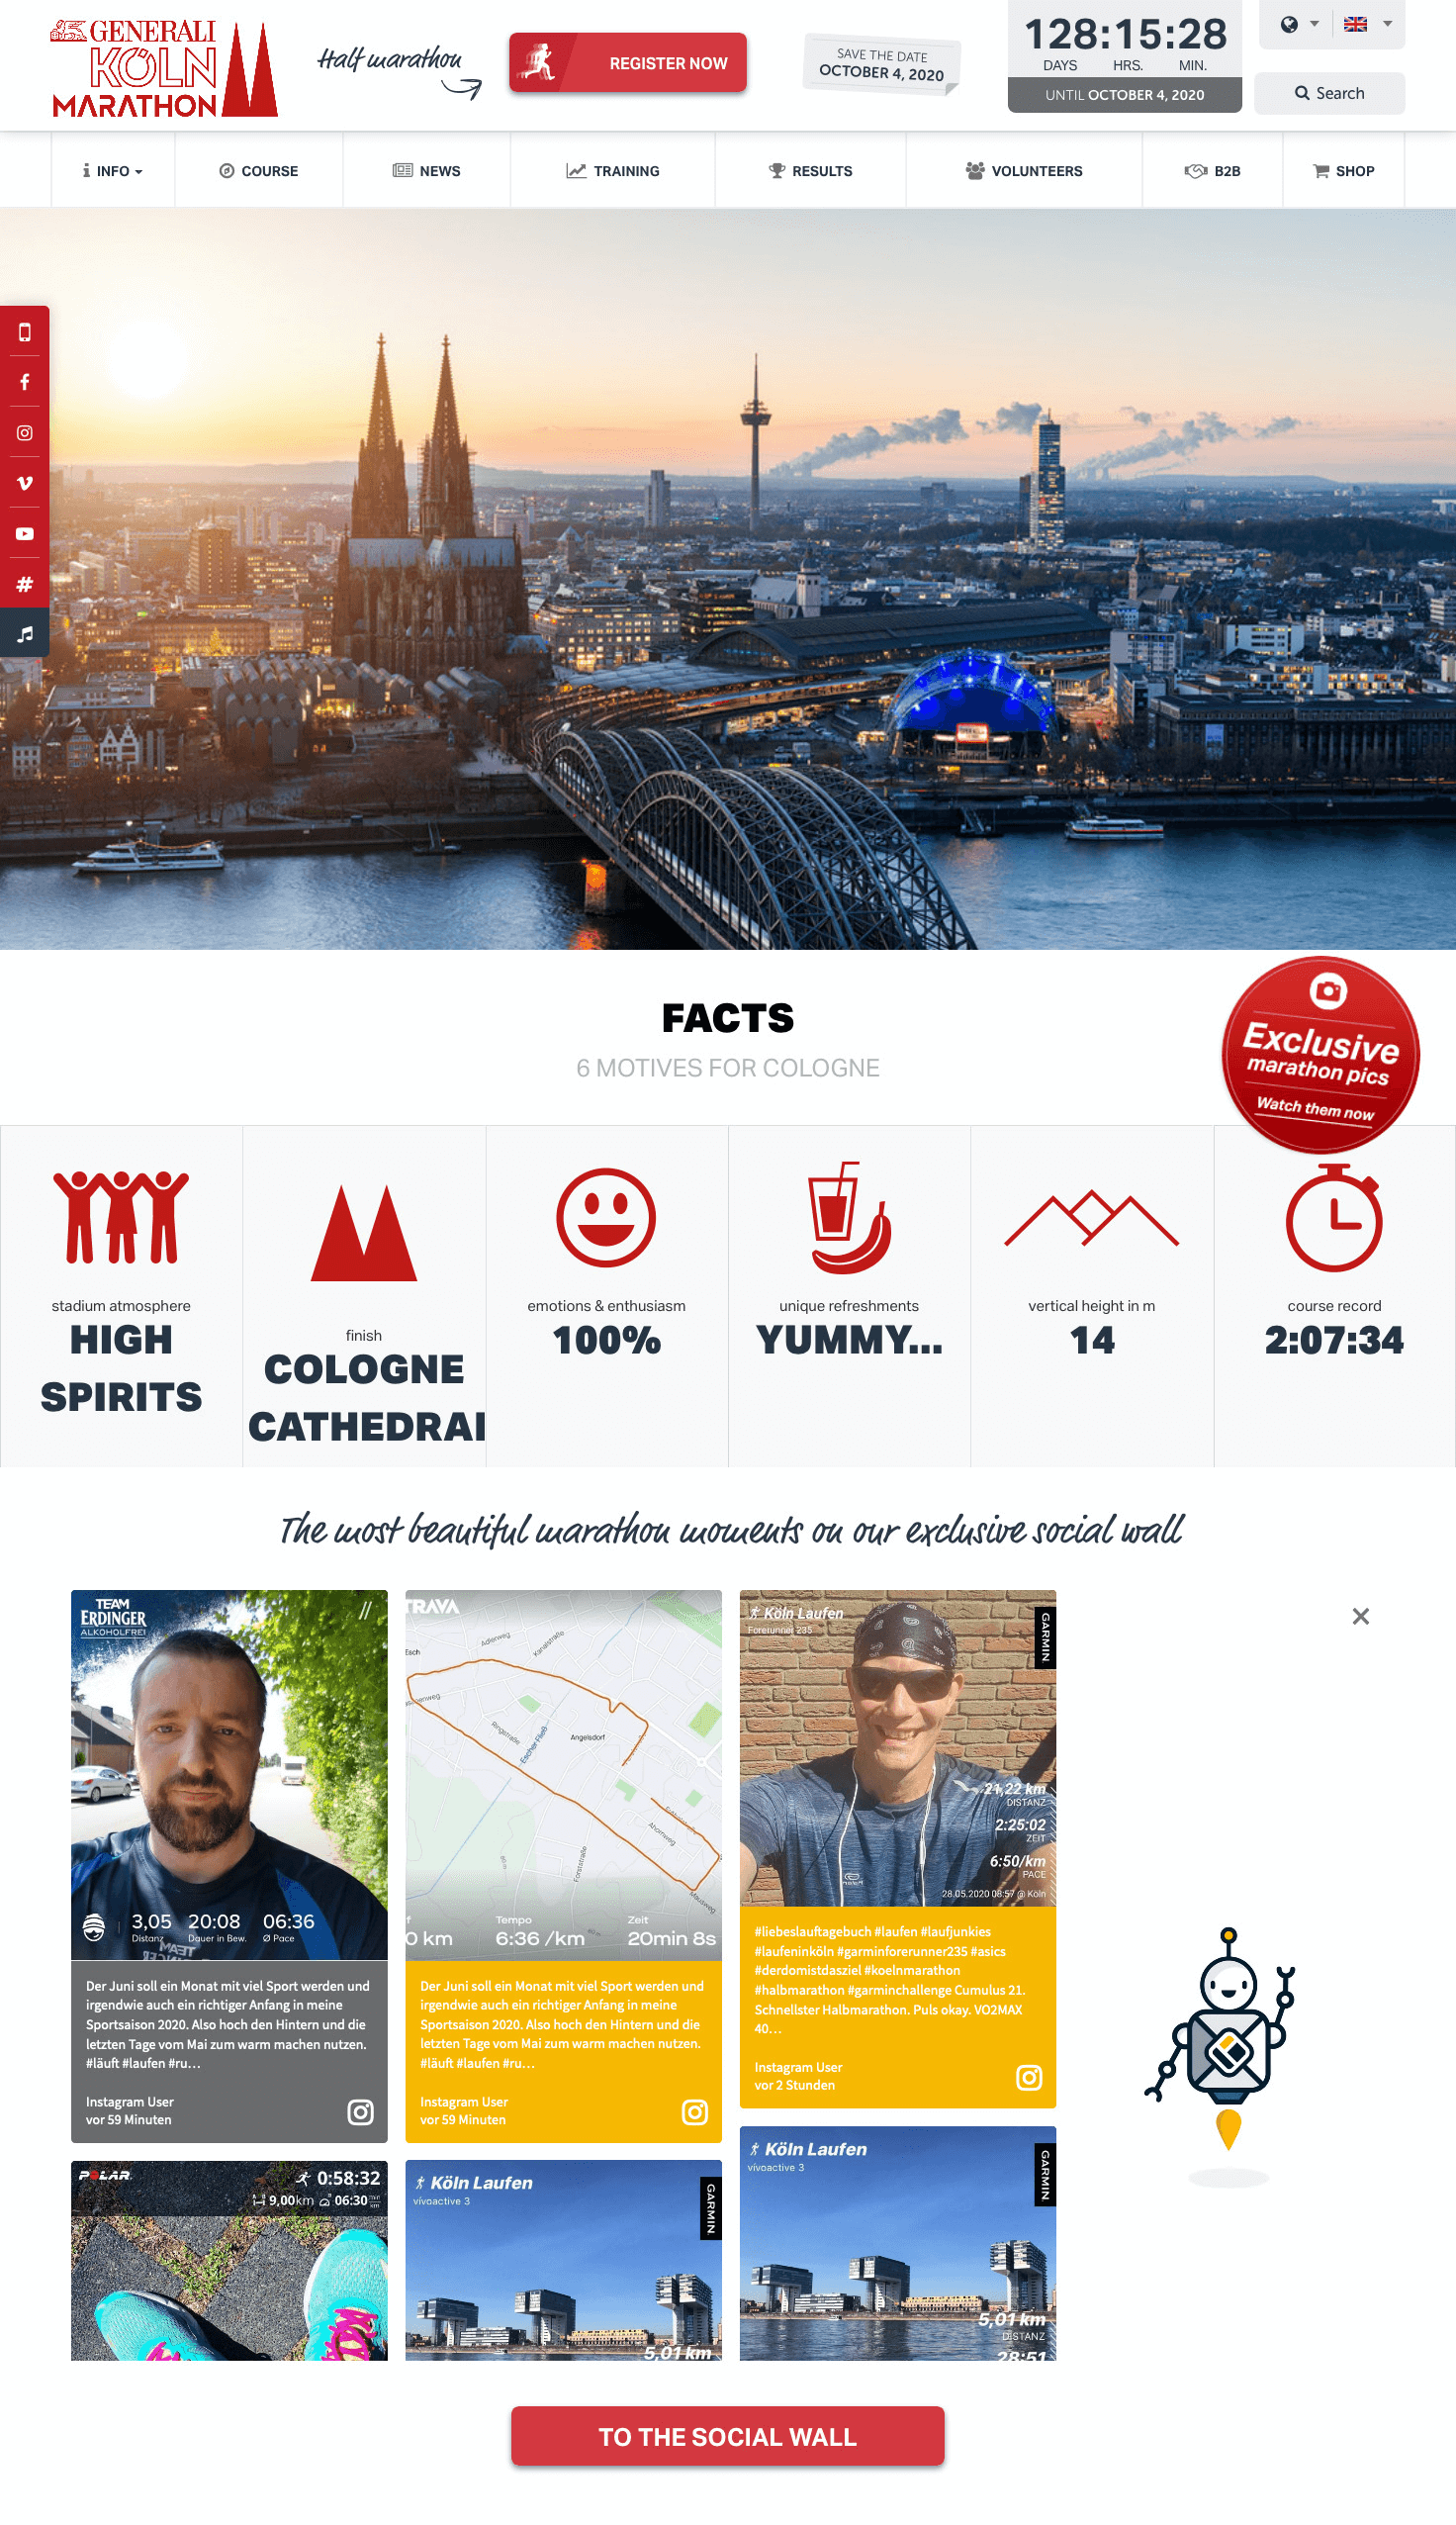 """Screenshot of the Cologne Marathon home page, displaying a view of Cologne in the header, various facts underneath it, and the social wall embedded at the bottom under the heading """"The most beautiful marathon moments on our exclusive social wall."""""""